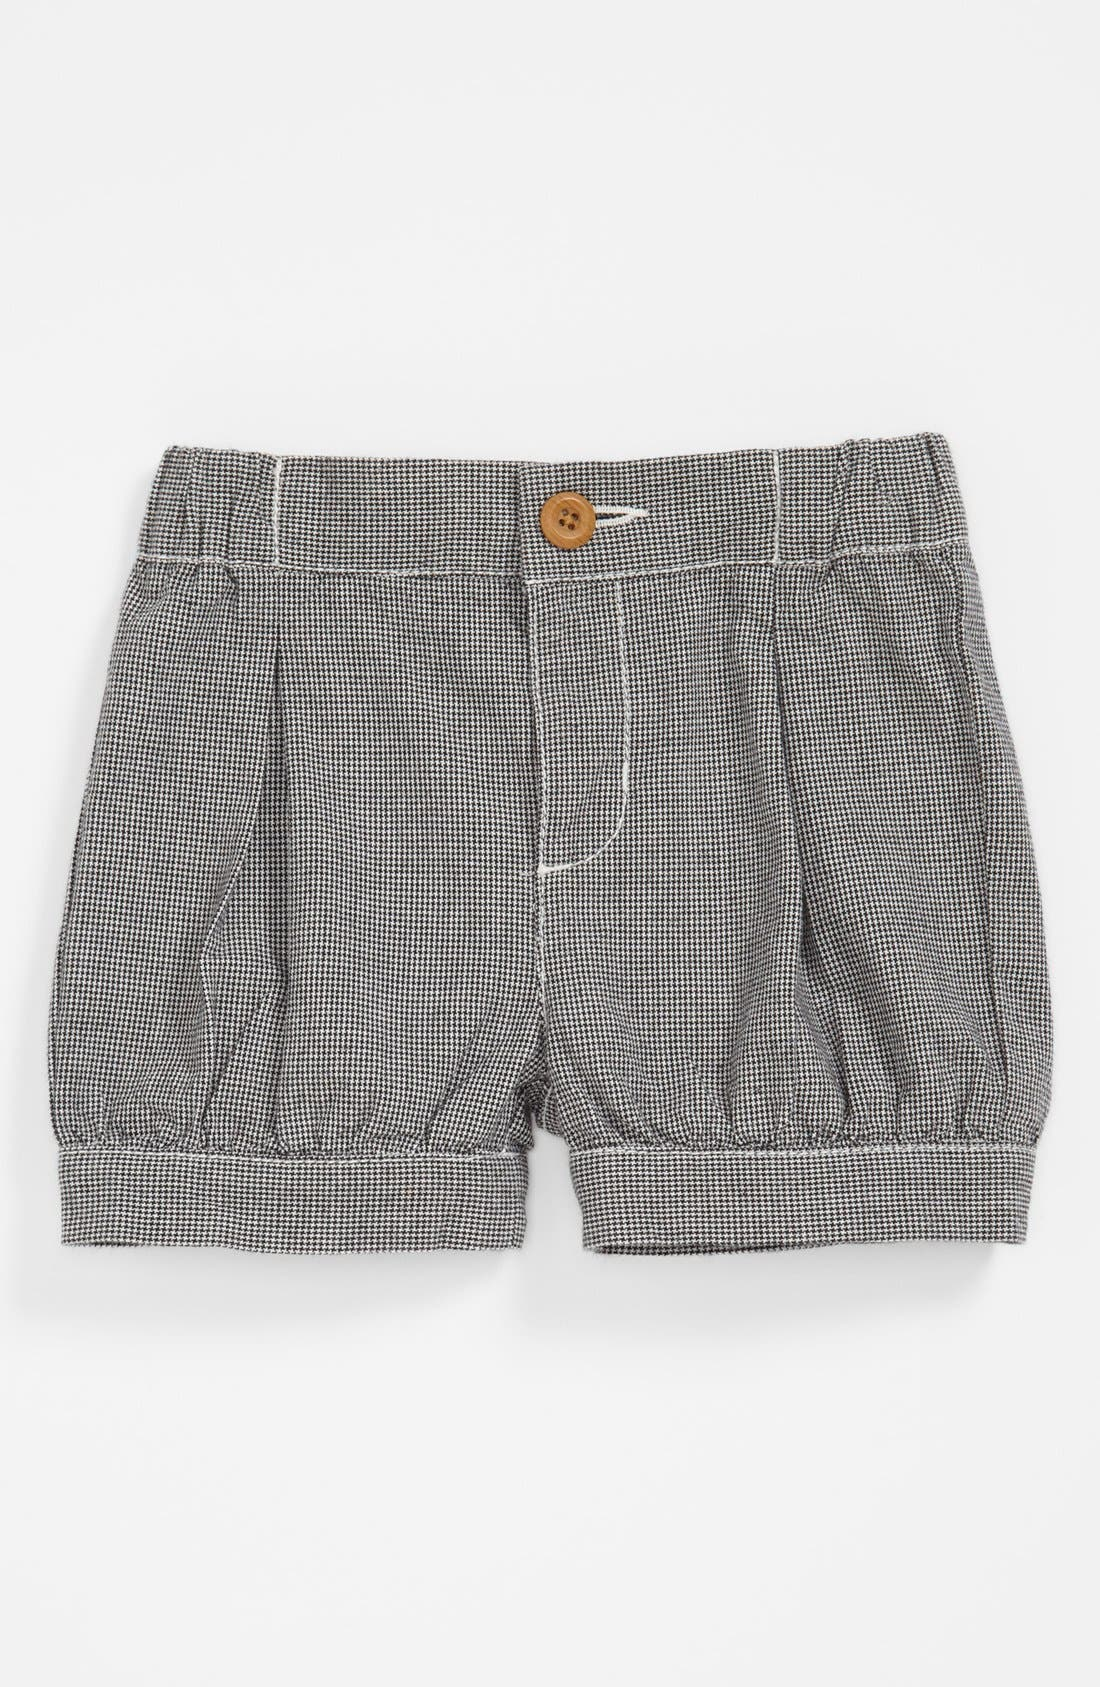 Main Image - Nordstrom Baby Bubble Shorts (Baby Girls)